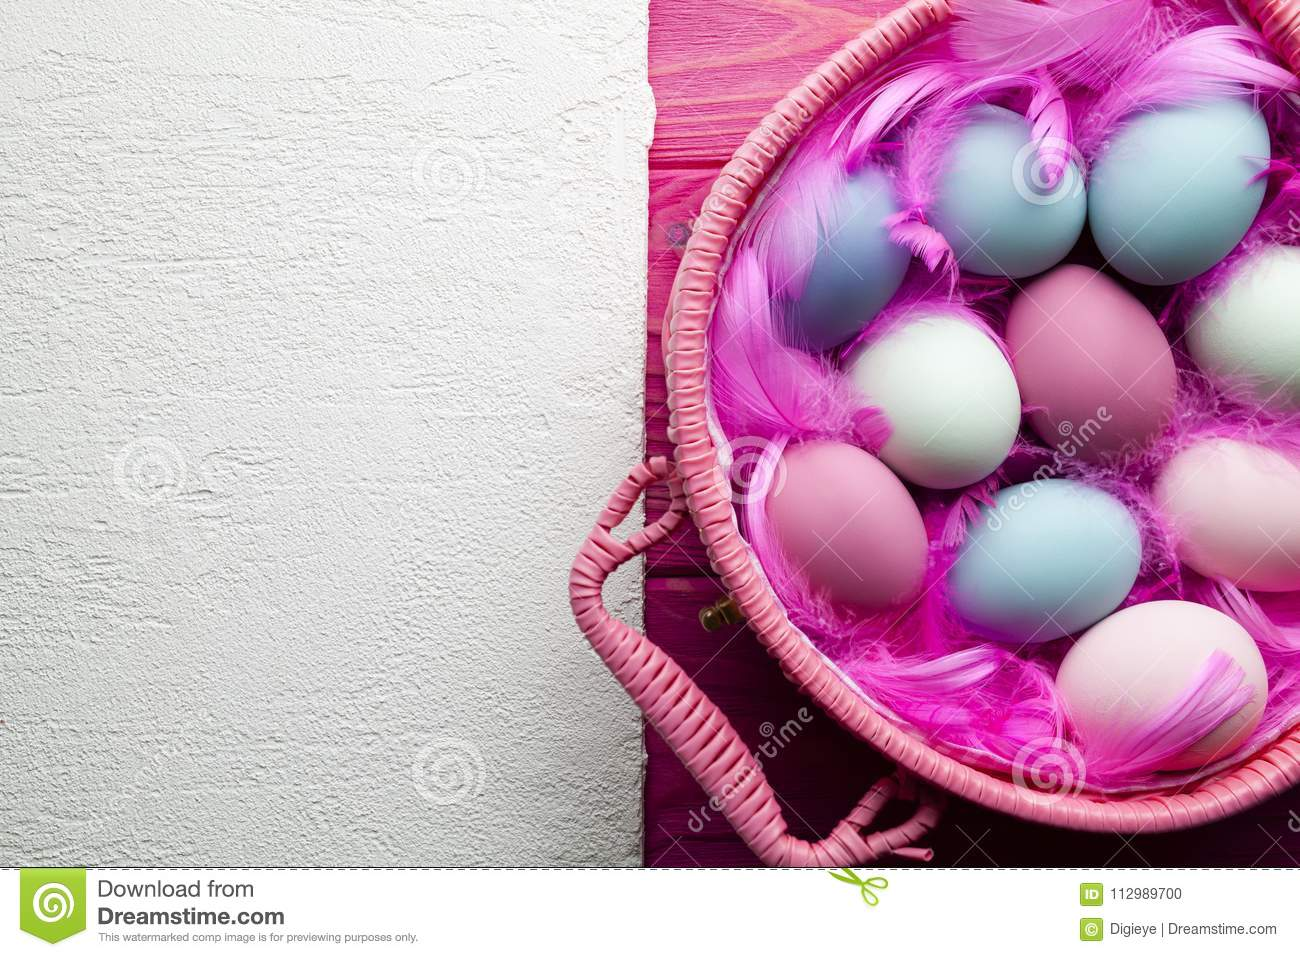 Easter background - white plastered surface and colored eggs